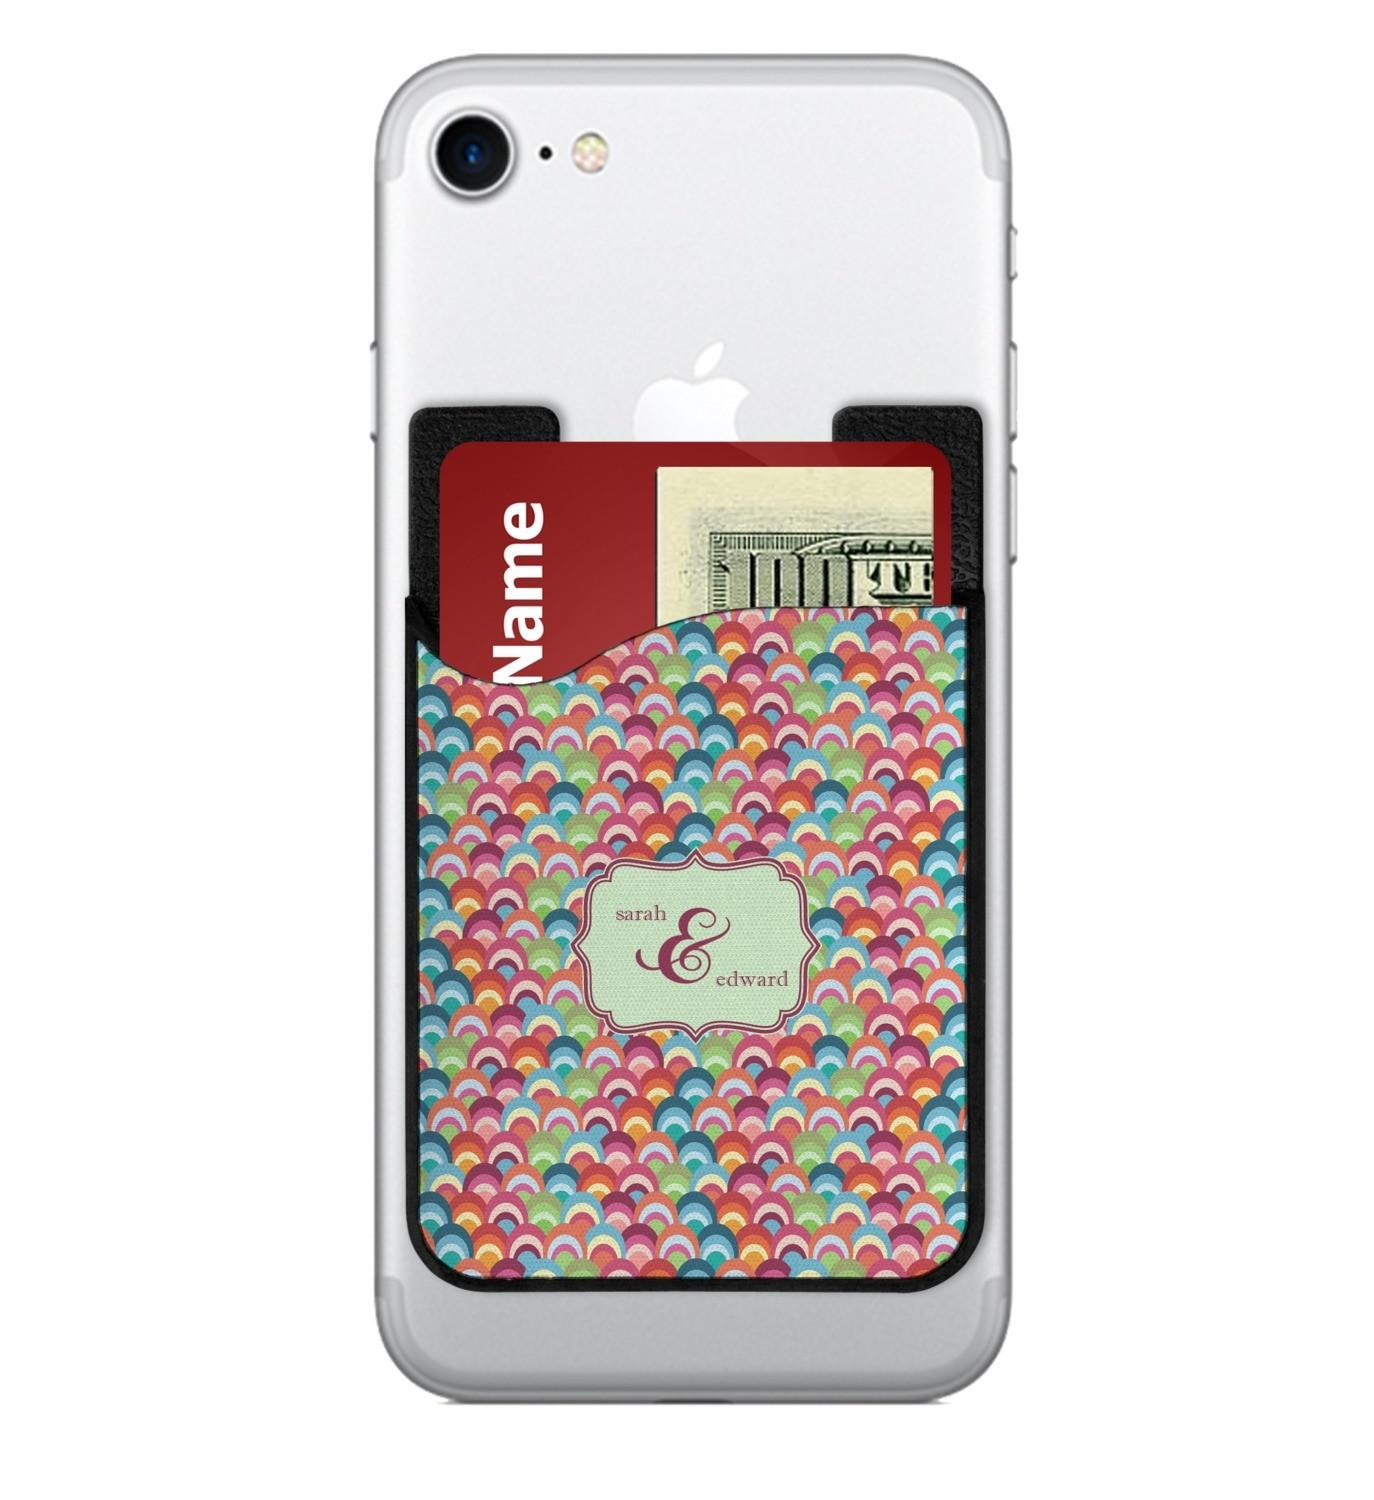 Retro Fishscales Cell Phone Credit Card Holder